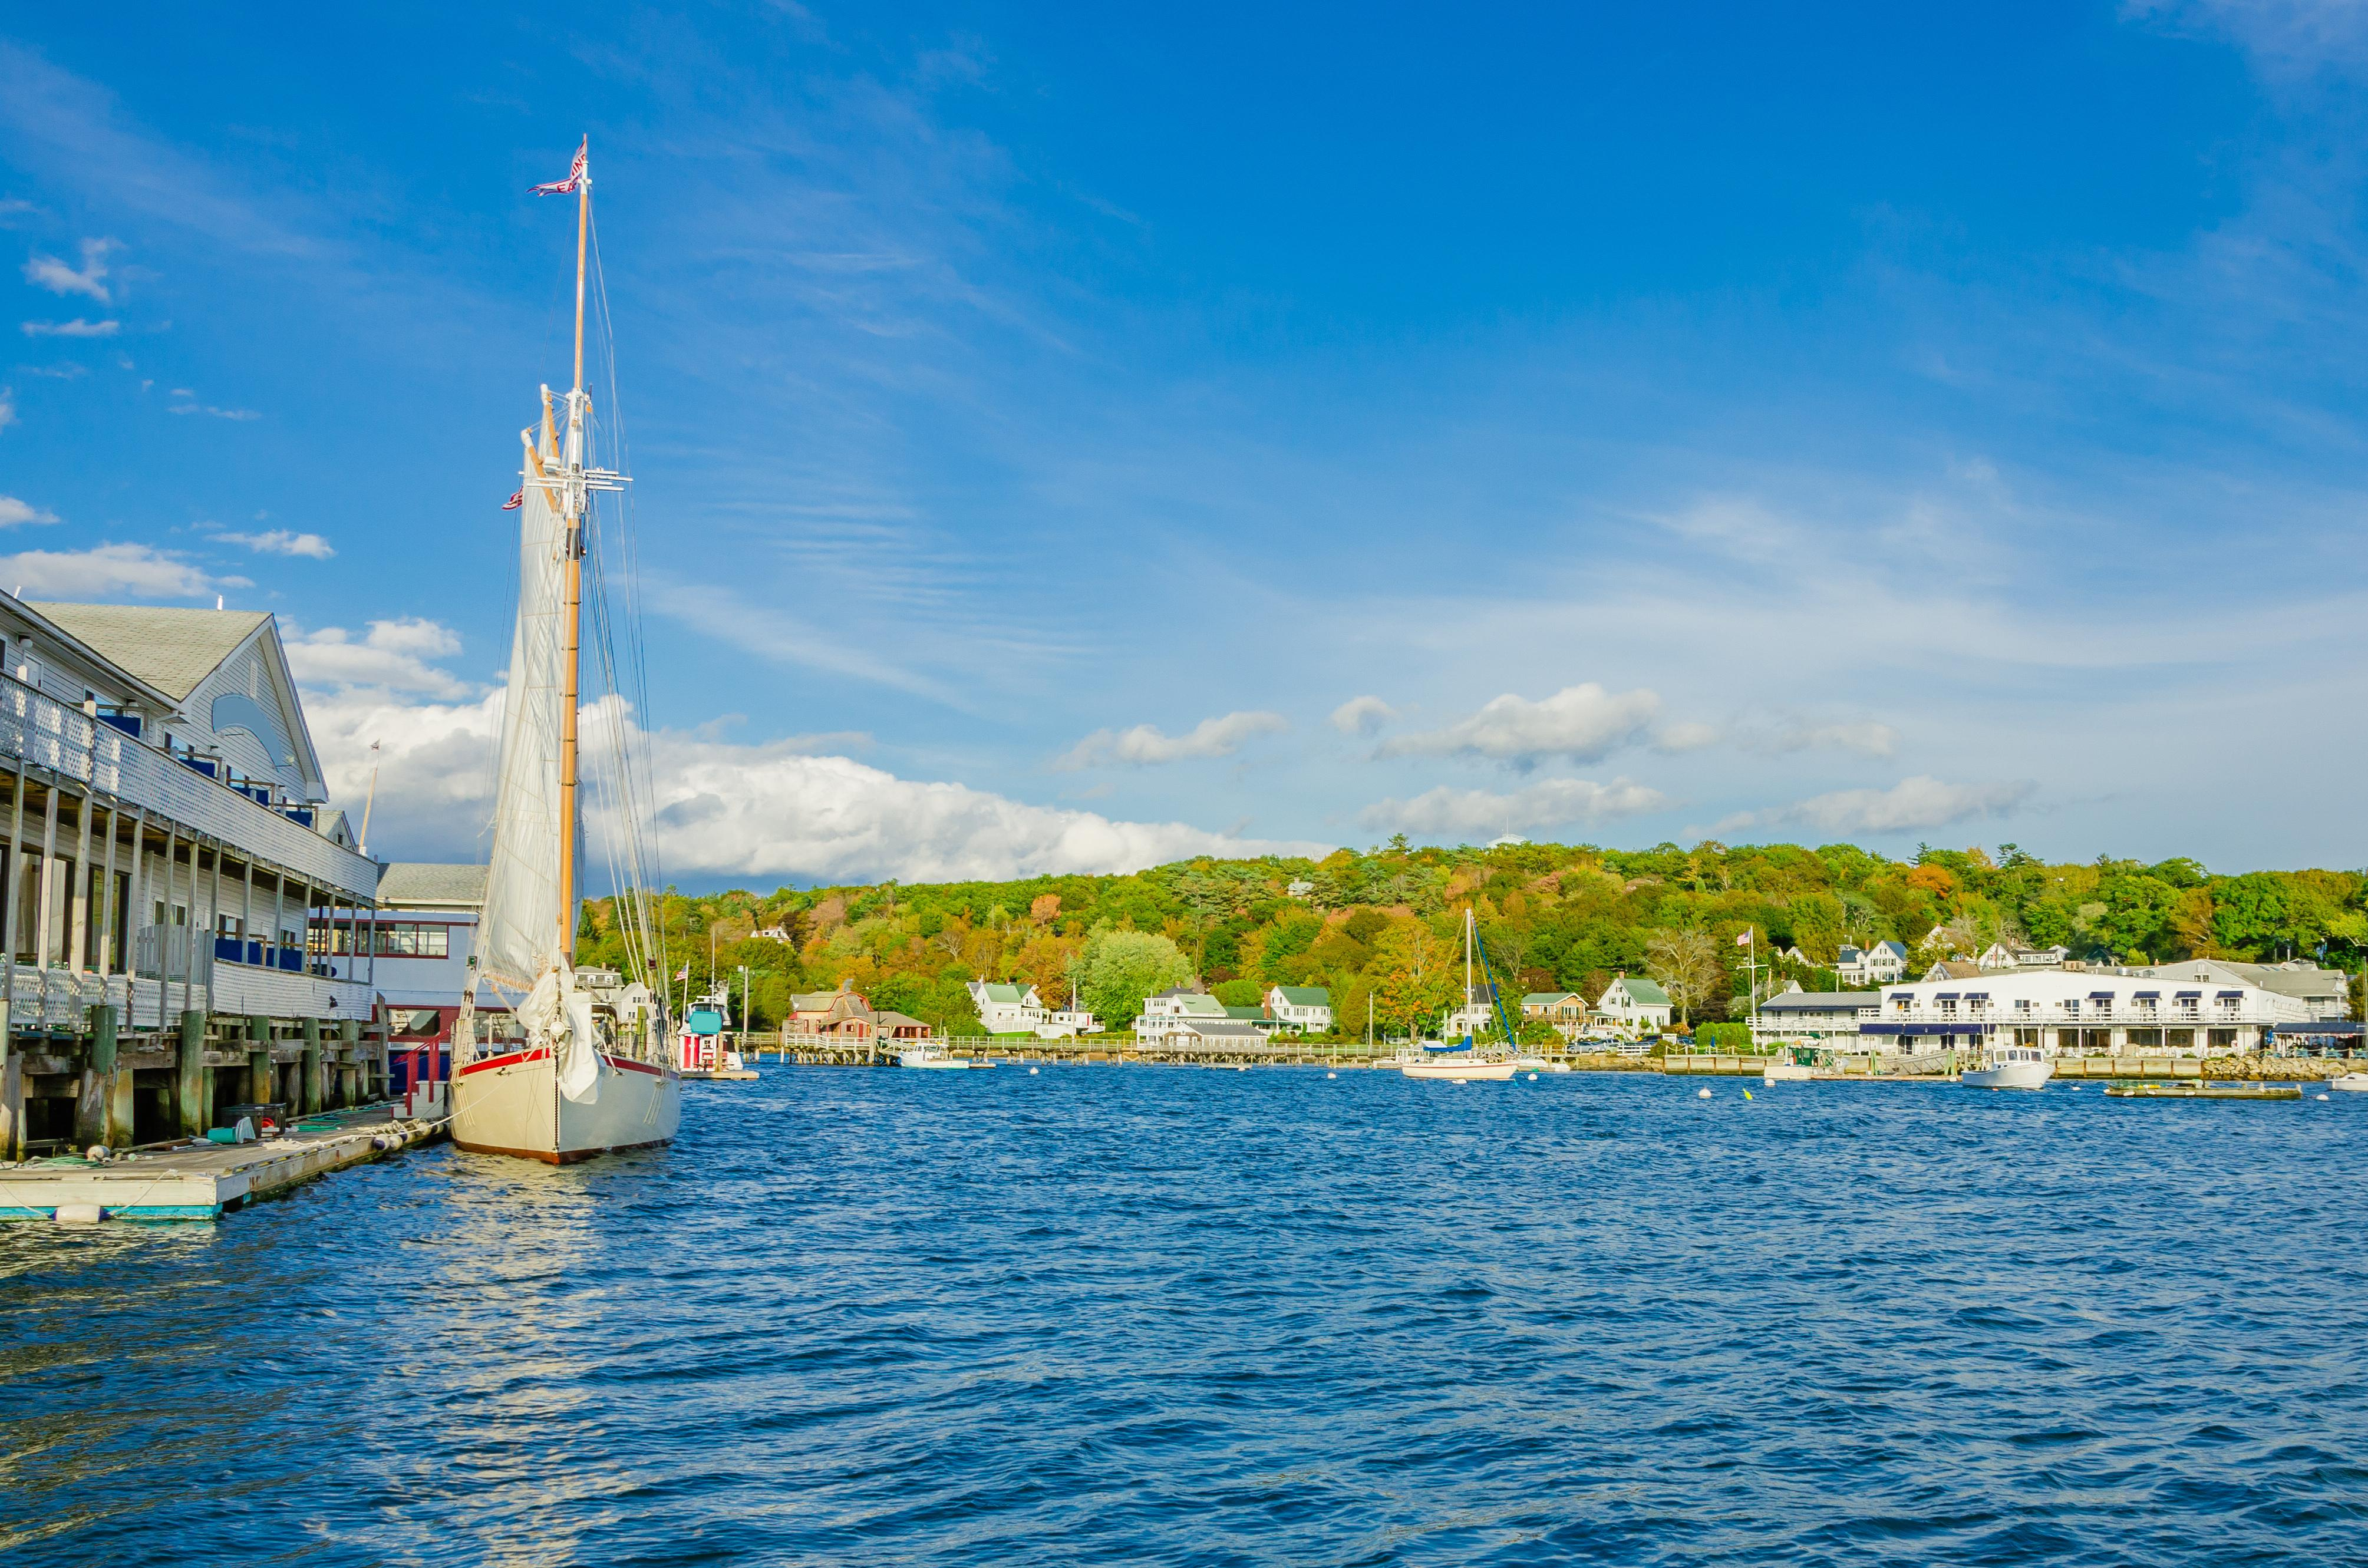 Enjoy strolling along the seaside village of downtown Boothbay Harbor, 2 miles away.